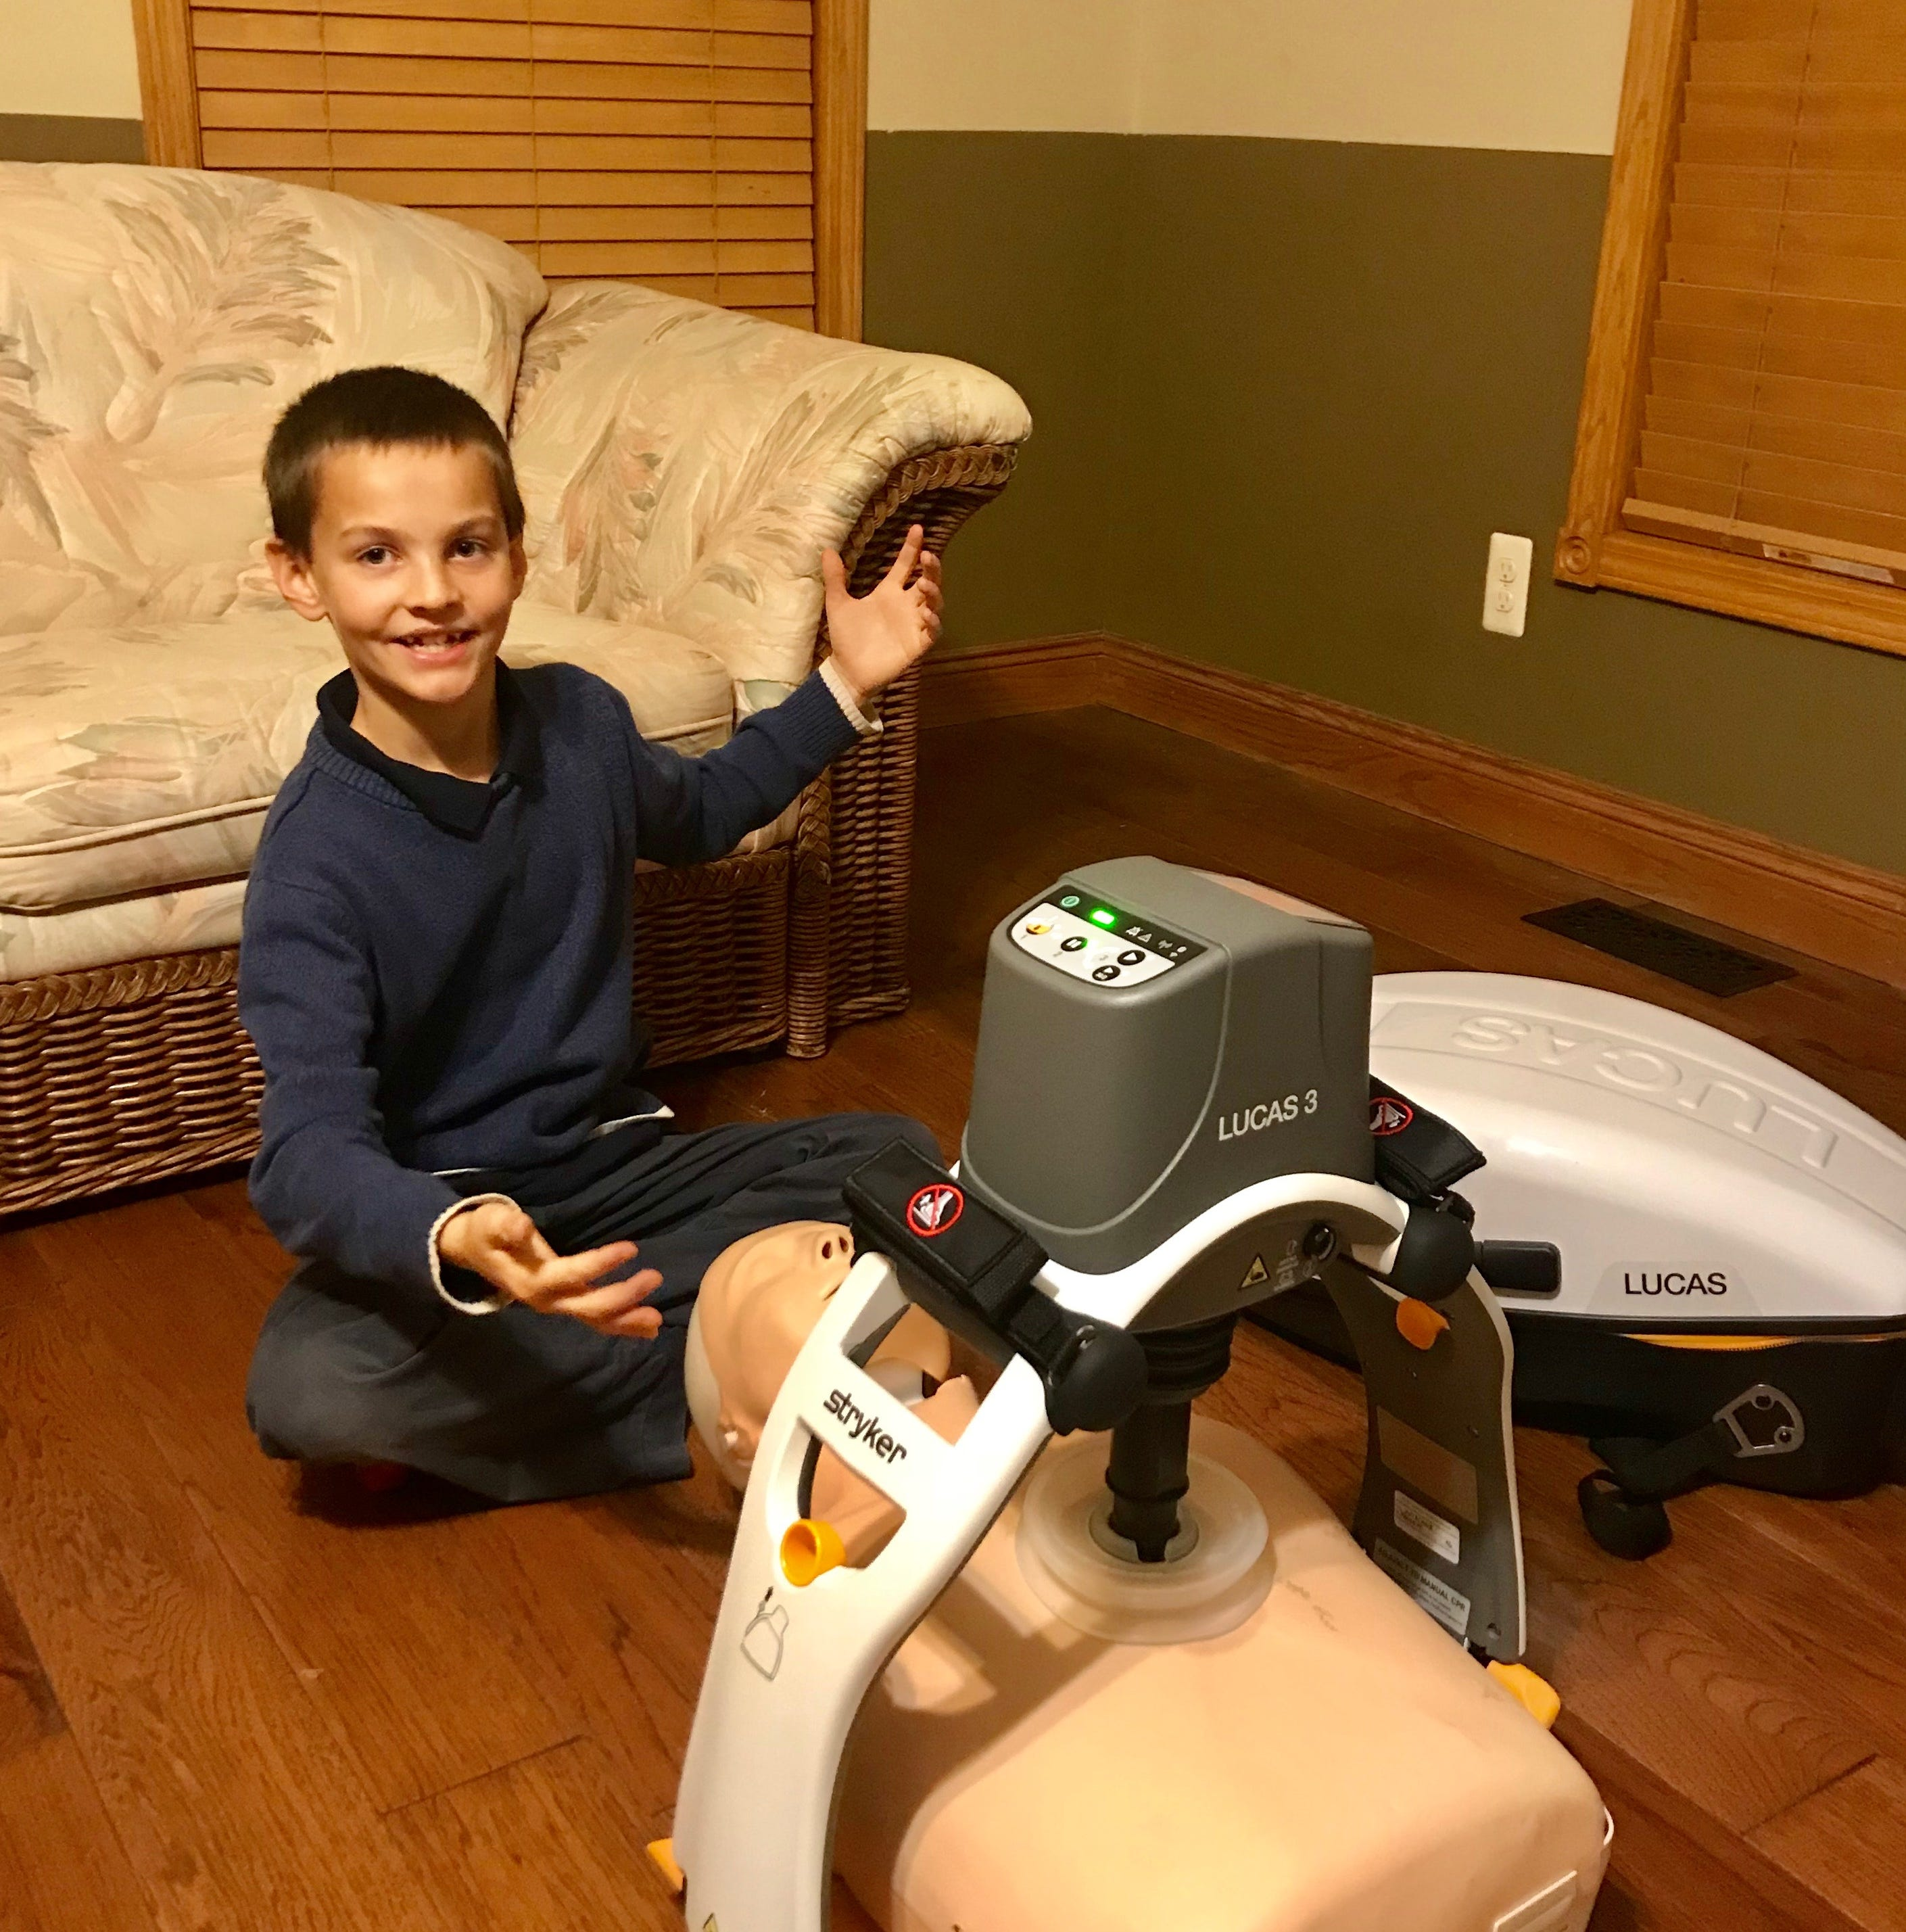 Lucas Vetter, 9, from Rose Township in Oakland County, shows off a LUCAS CPR machine donated to him to showcase as part of presentations he is giving to help raise money for the Howell Area Fire Department to buy another of the machines.